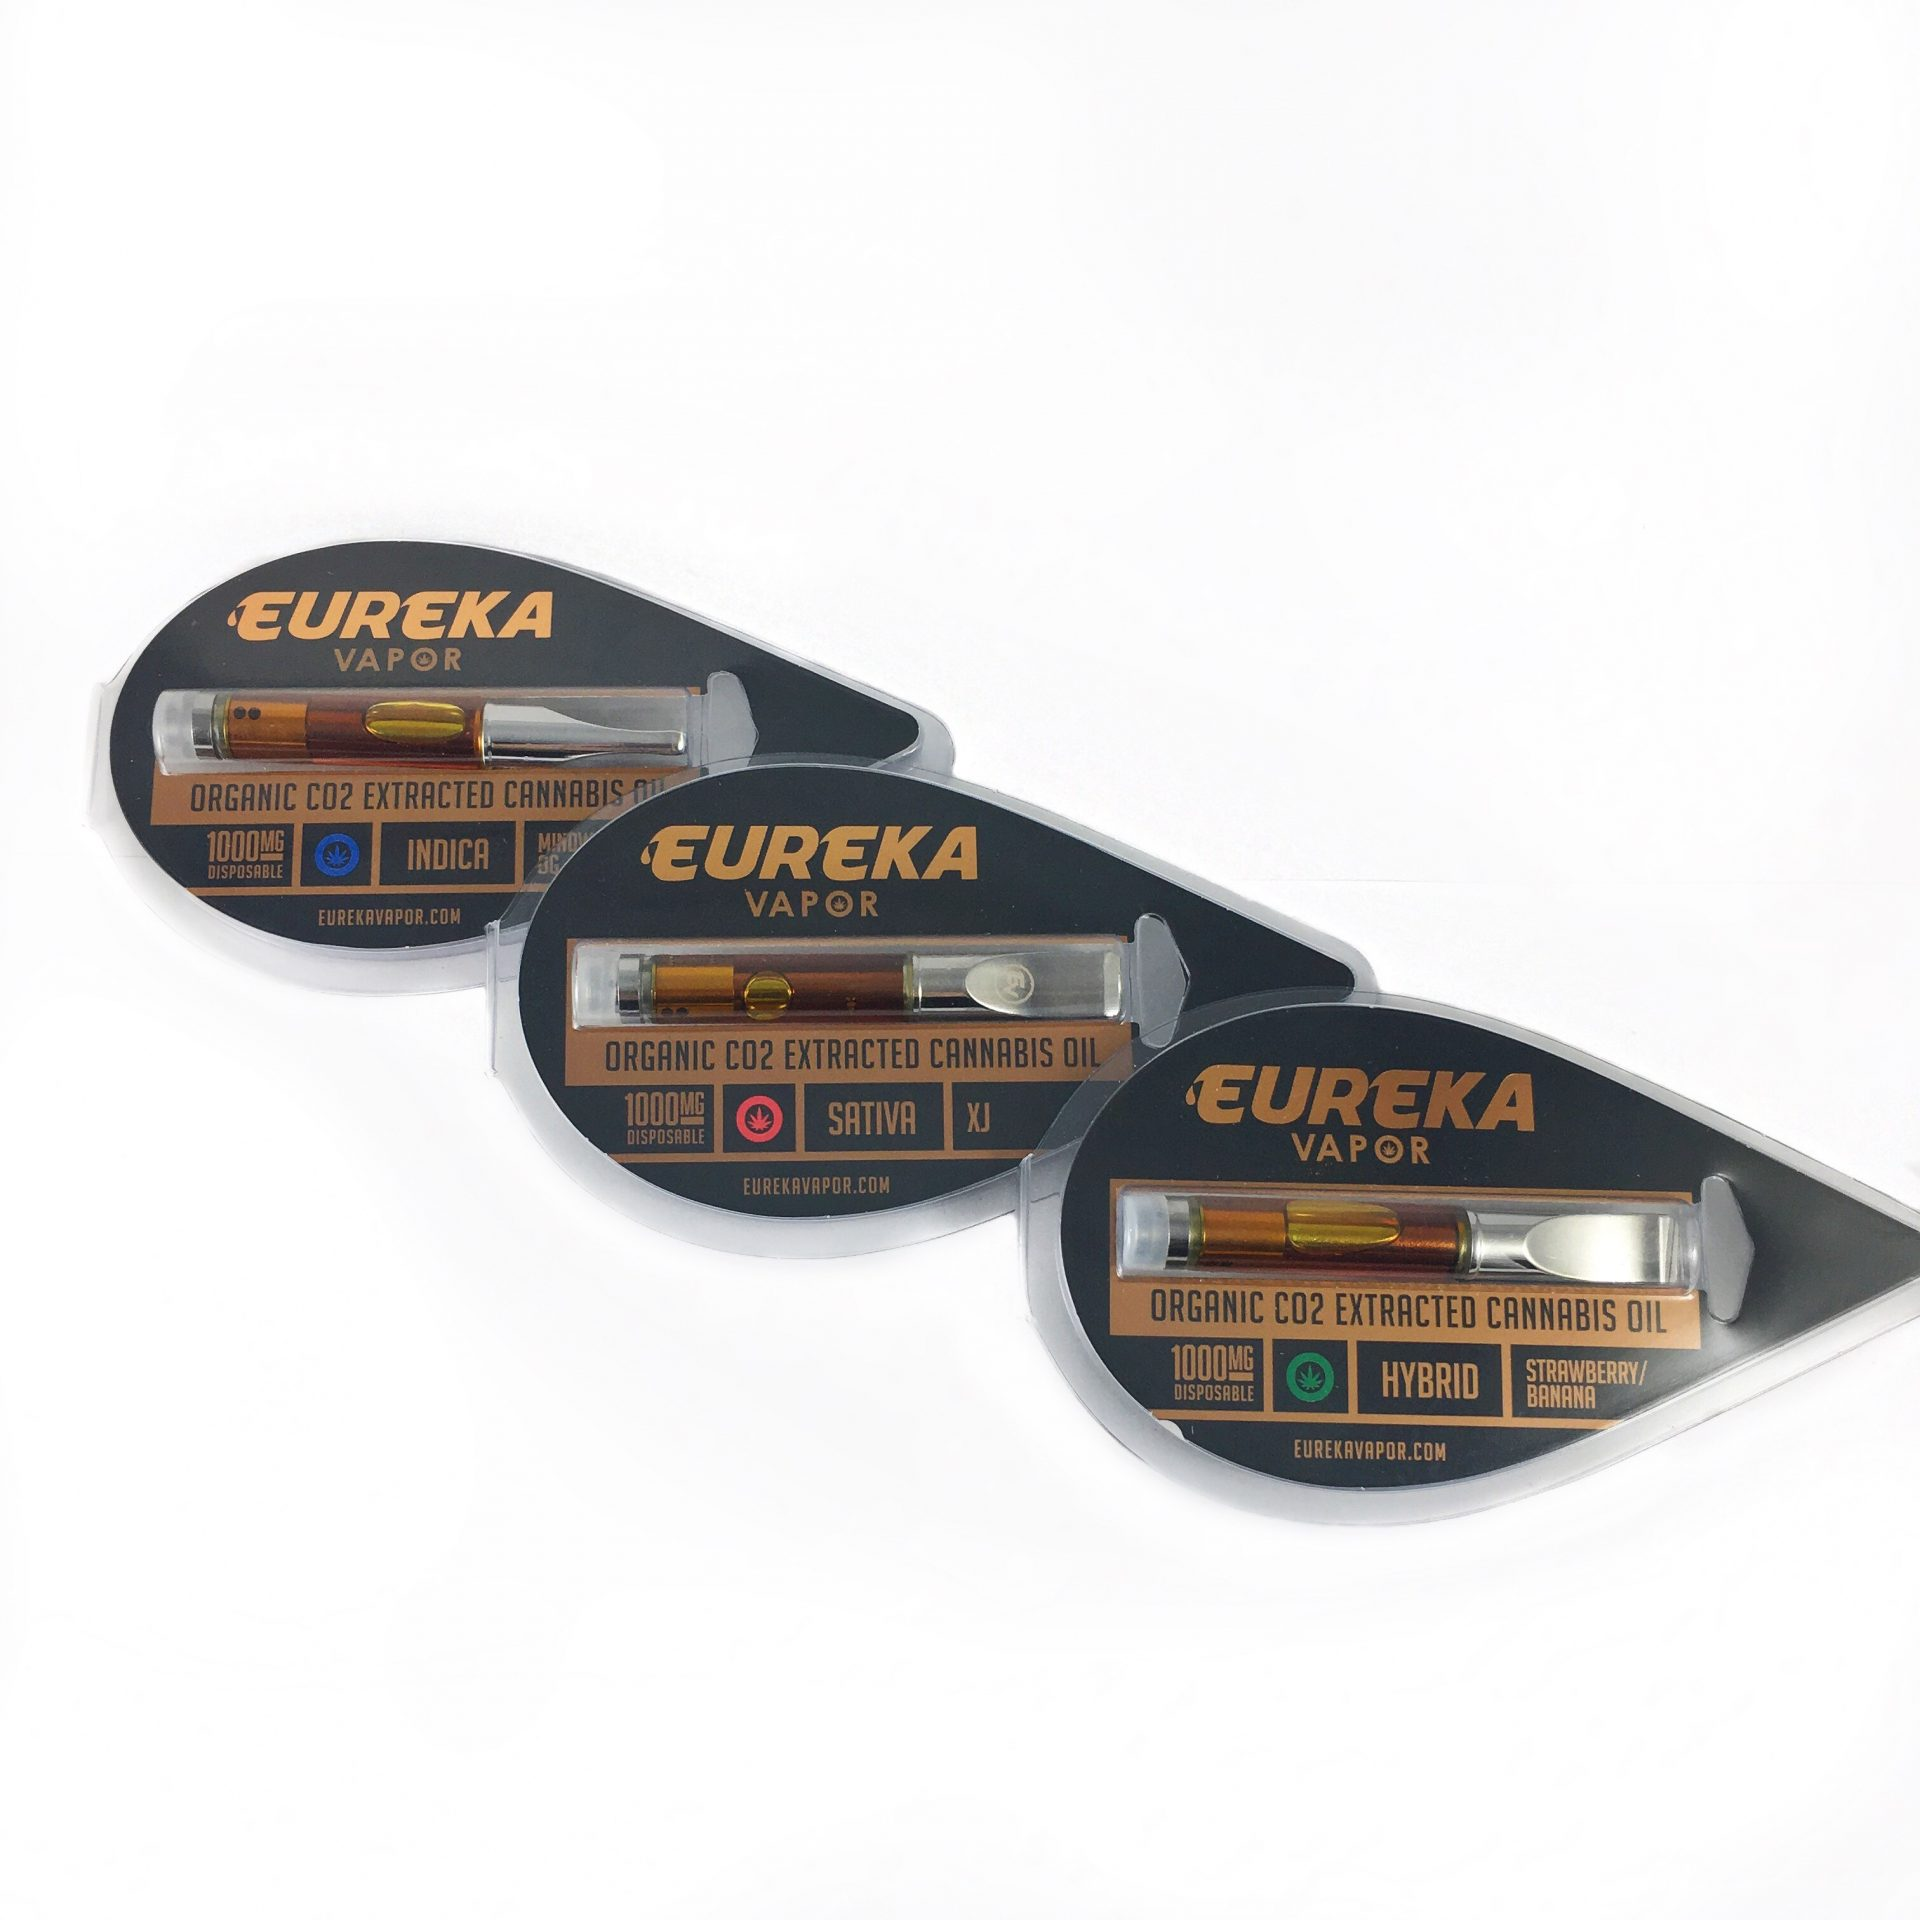 eureka vapor amber high potency cartridges 1 gram 15 strains